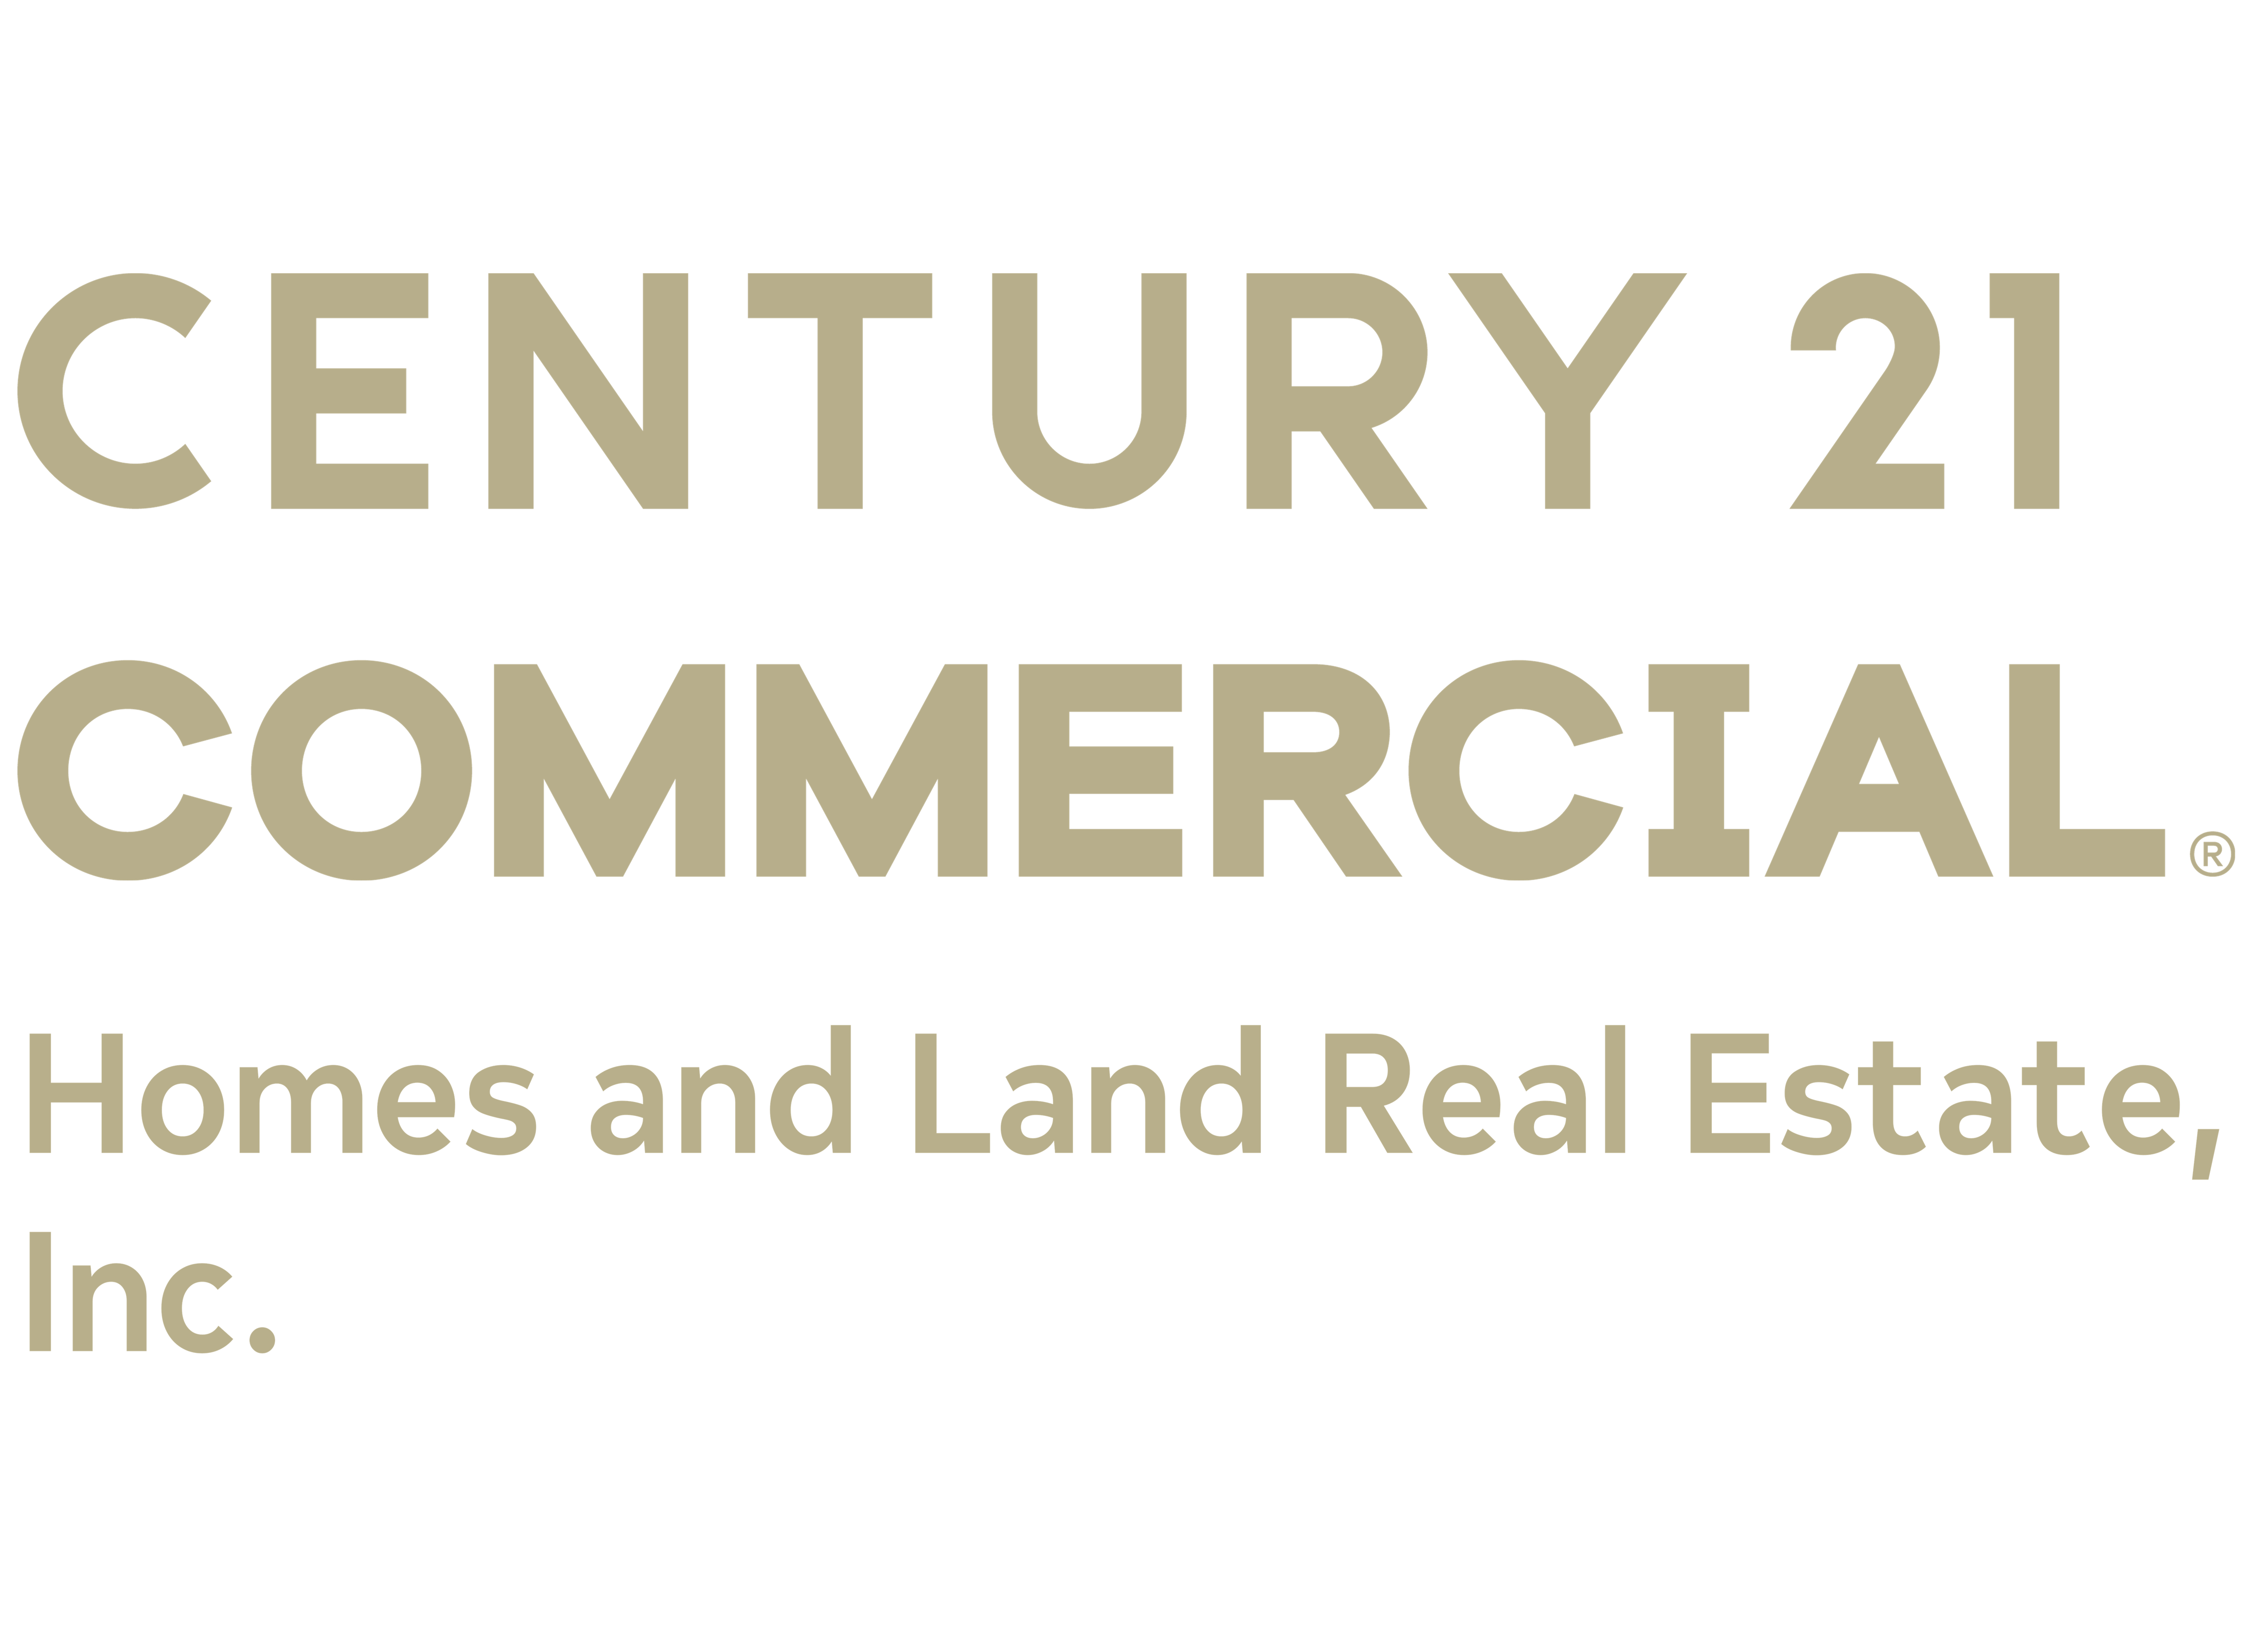 CENTURY 21 Homes and Land Real Estate, Inc.